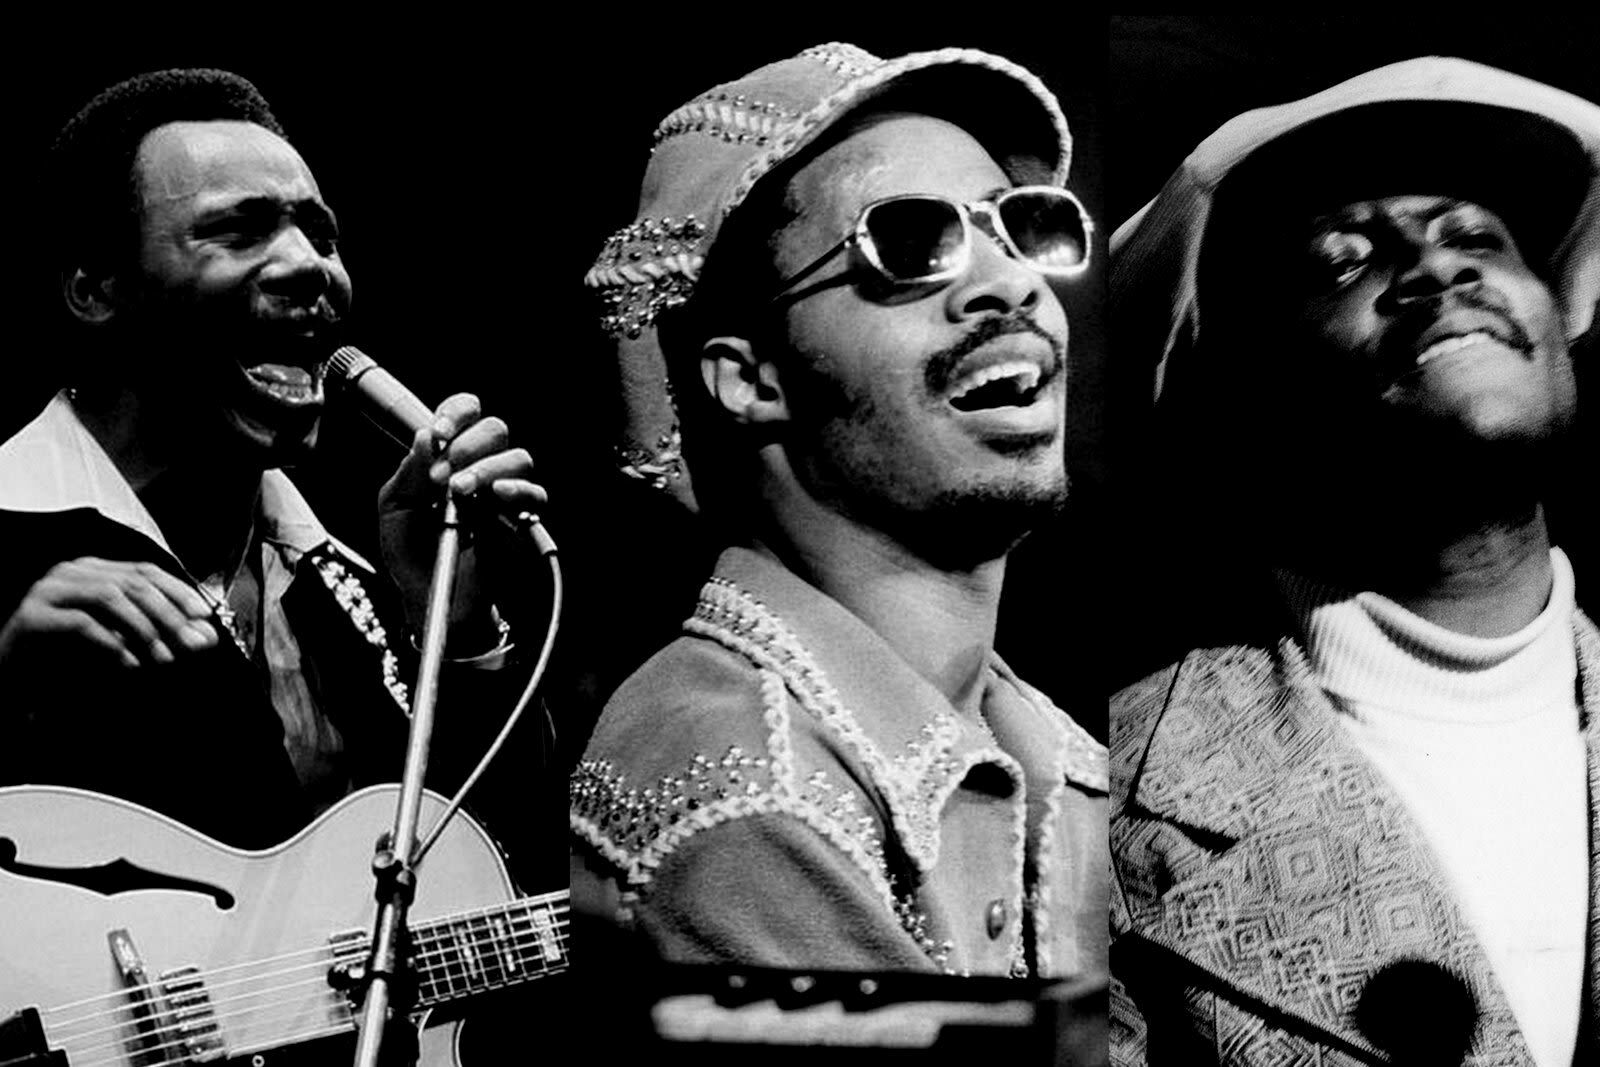 Tribute to Stevie Wonder, Donny Hathaway & George Benson